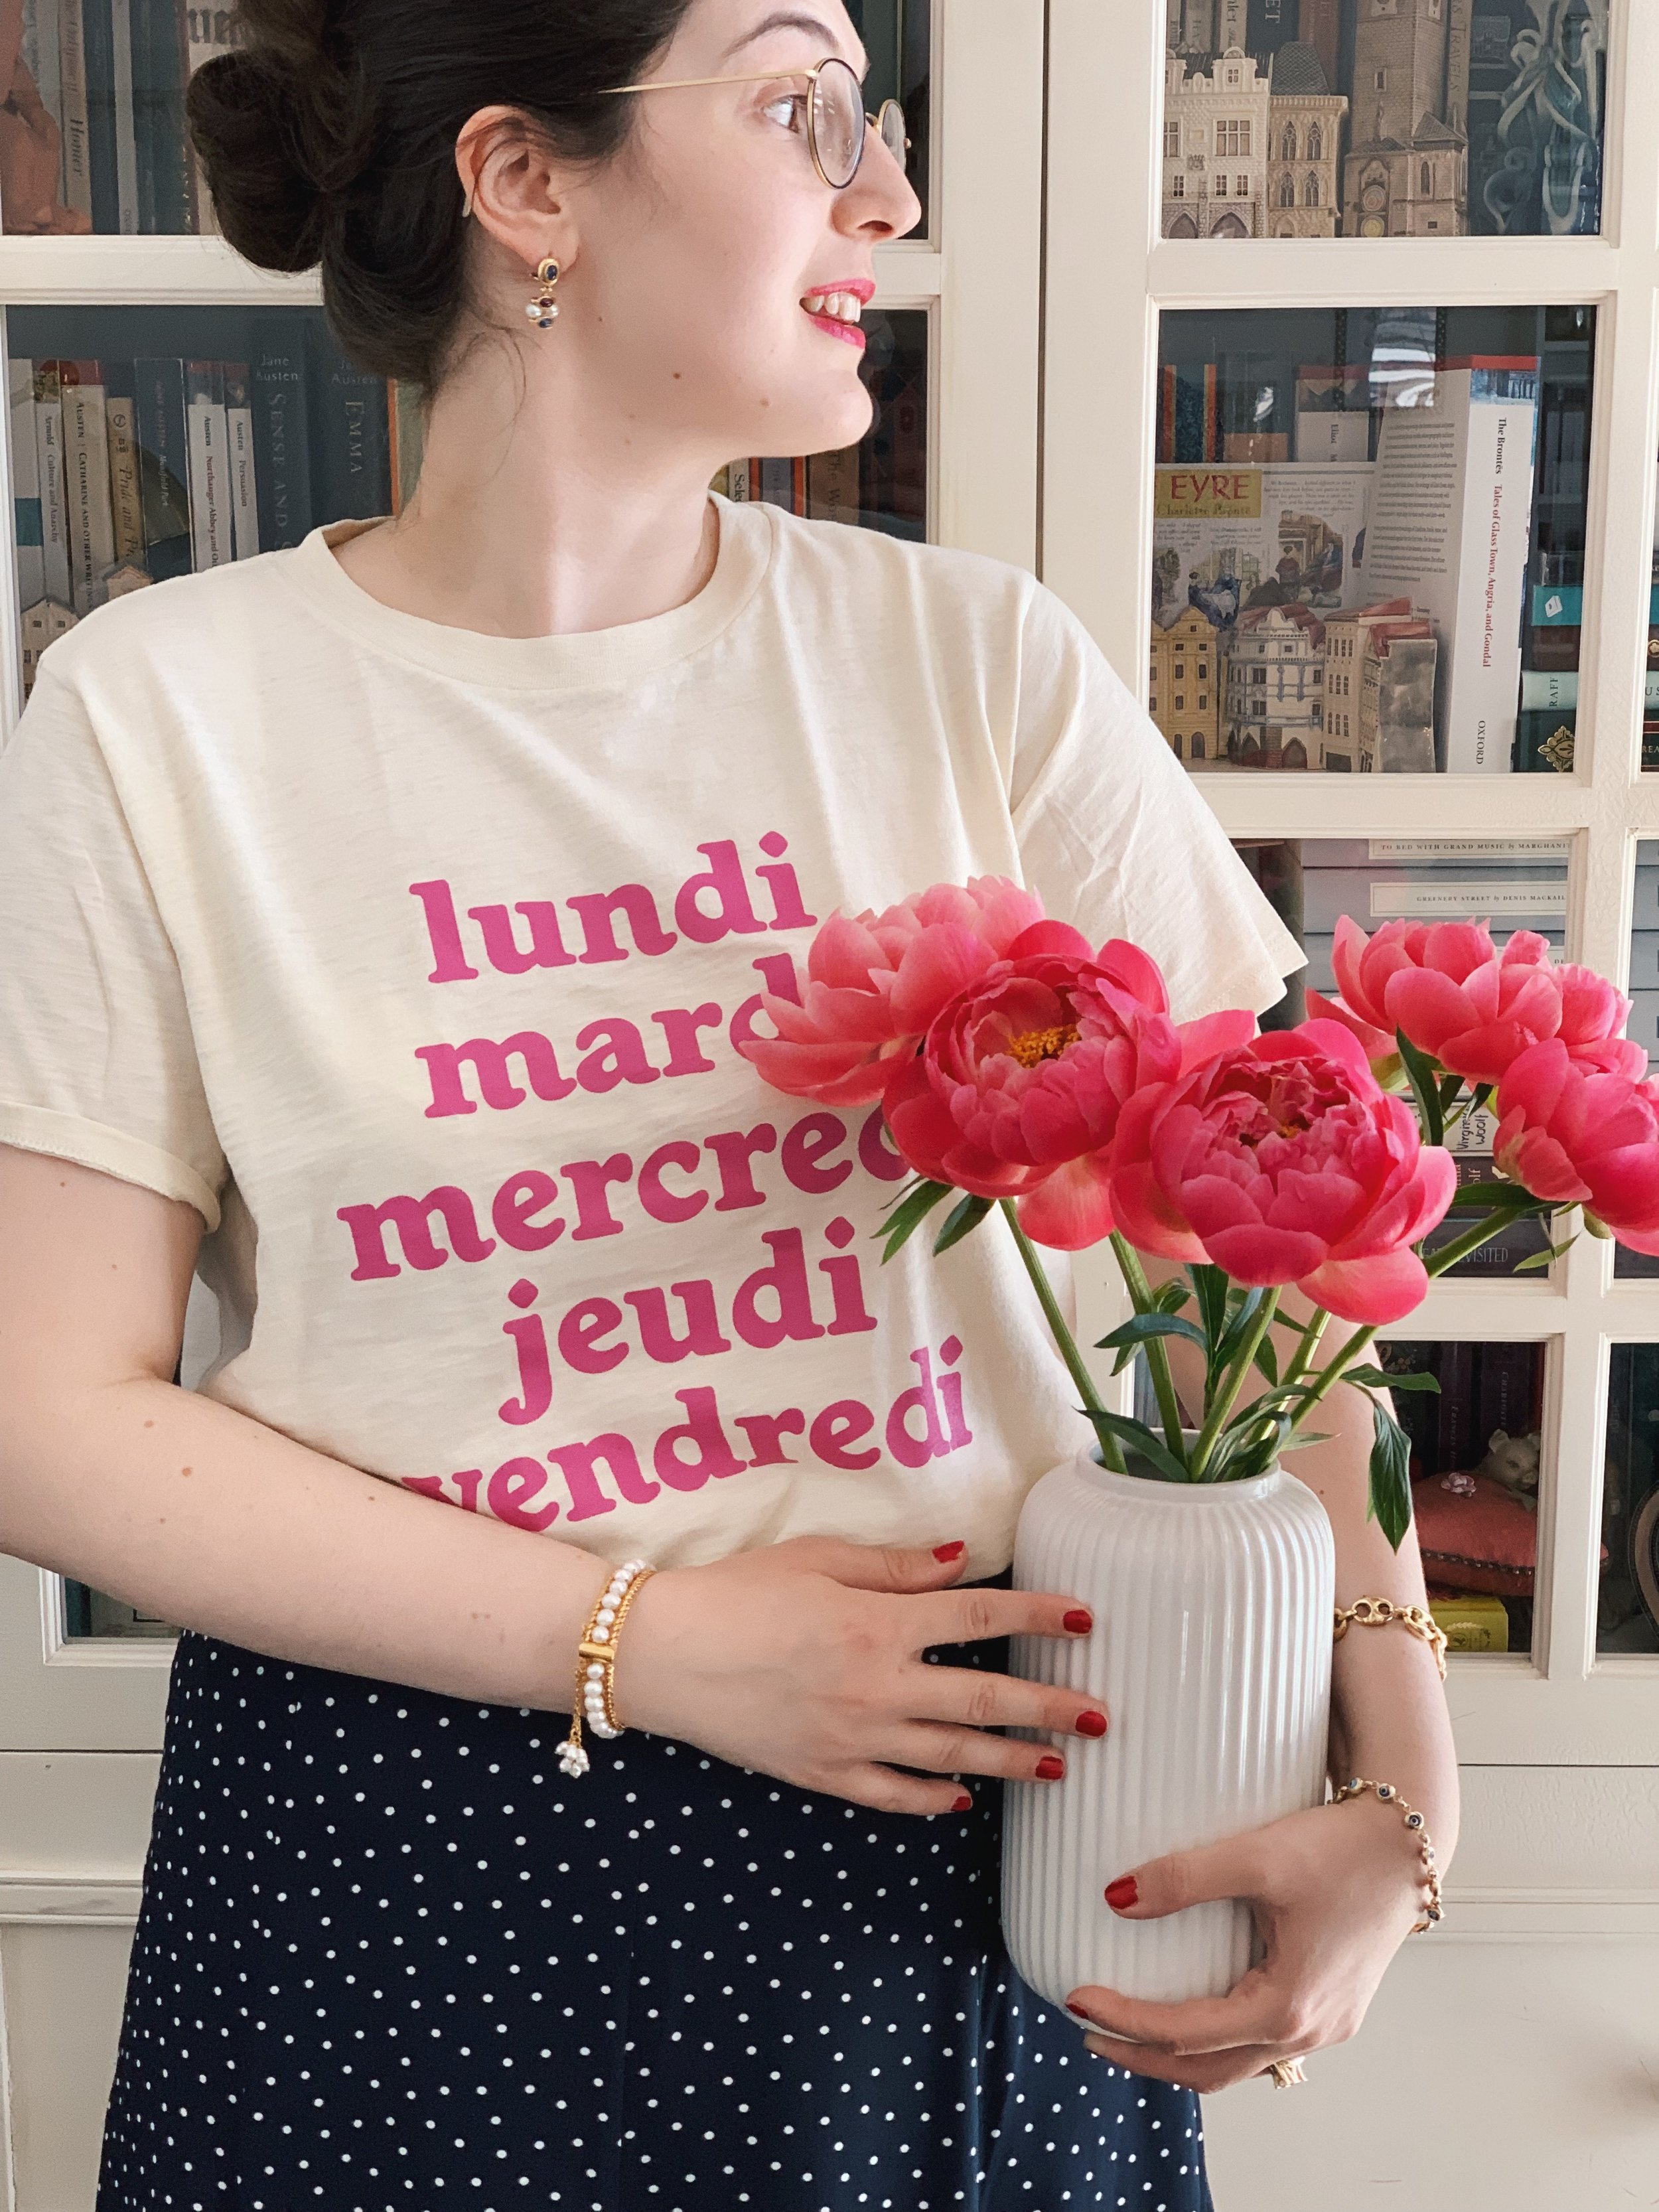 The Attic on Eighth Spring Fashion pink peonies.JPG